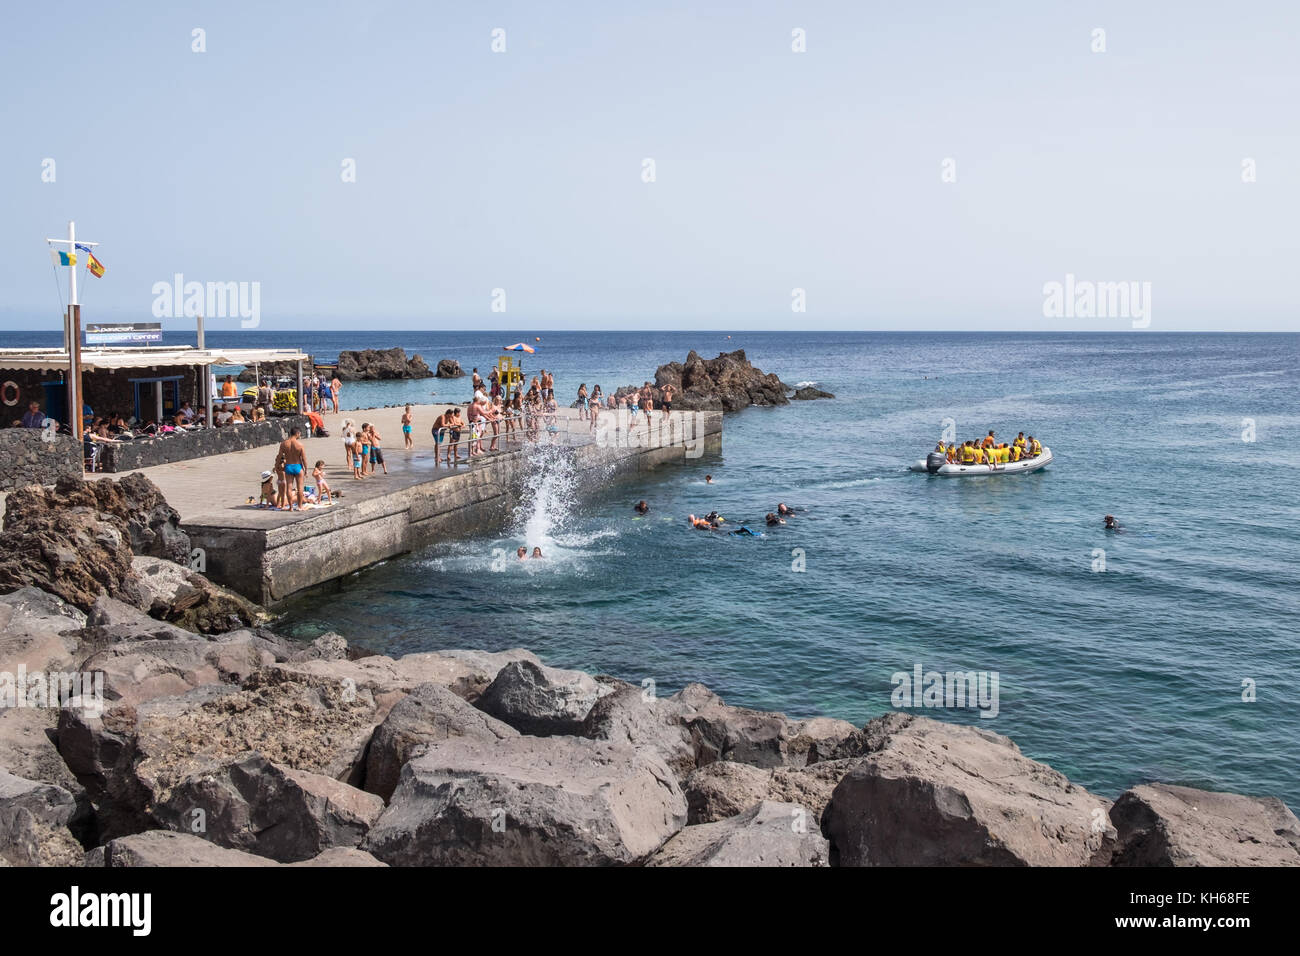 Playa Chica Puerto Del Carmen Lanzarote Canary Islands Spain Stock Photo Alamy